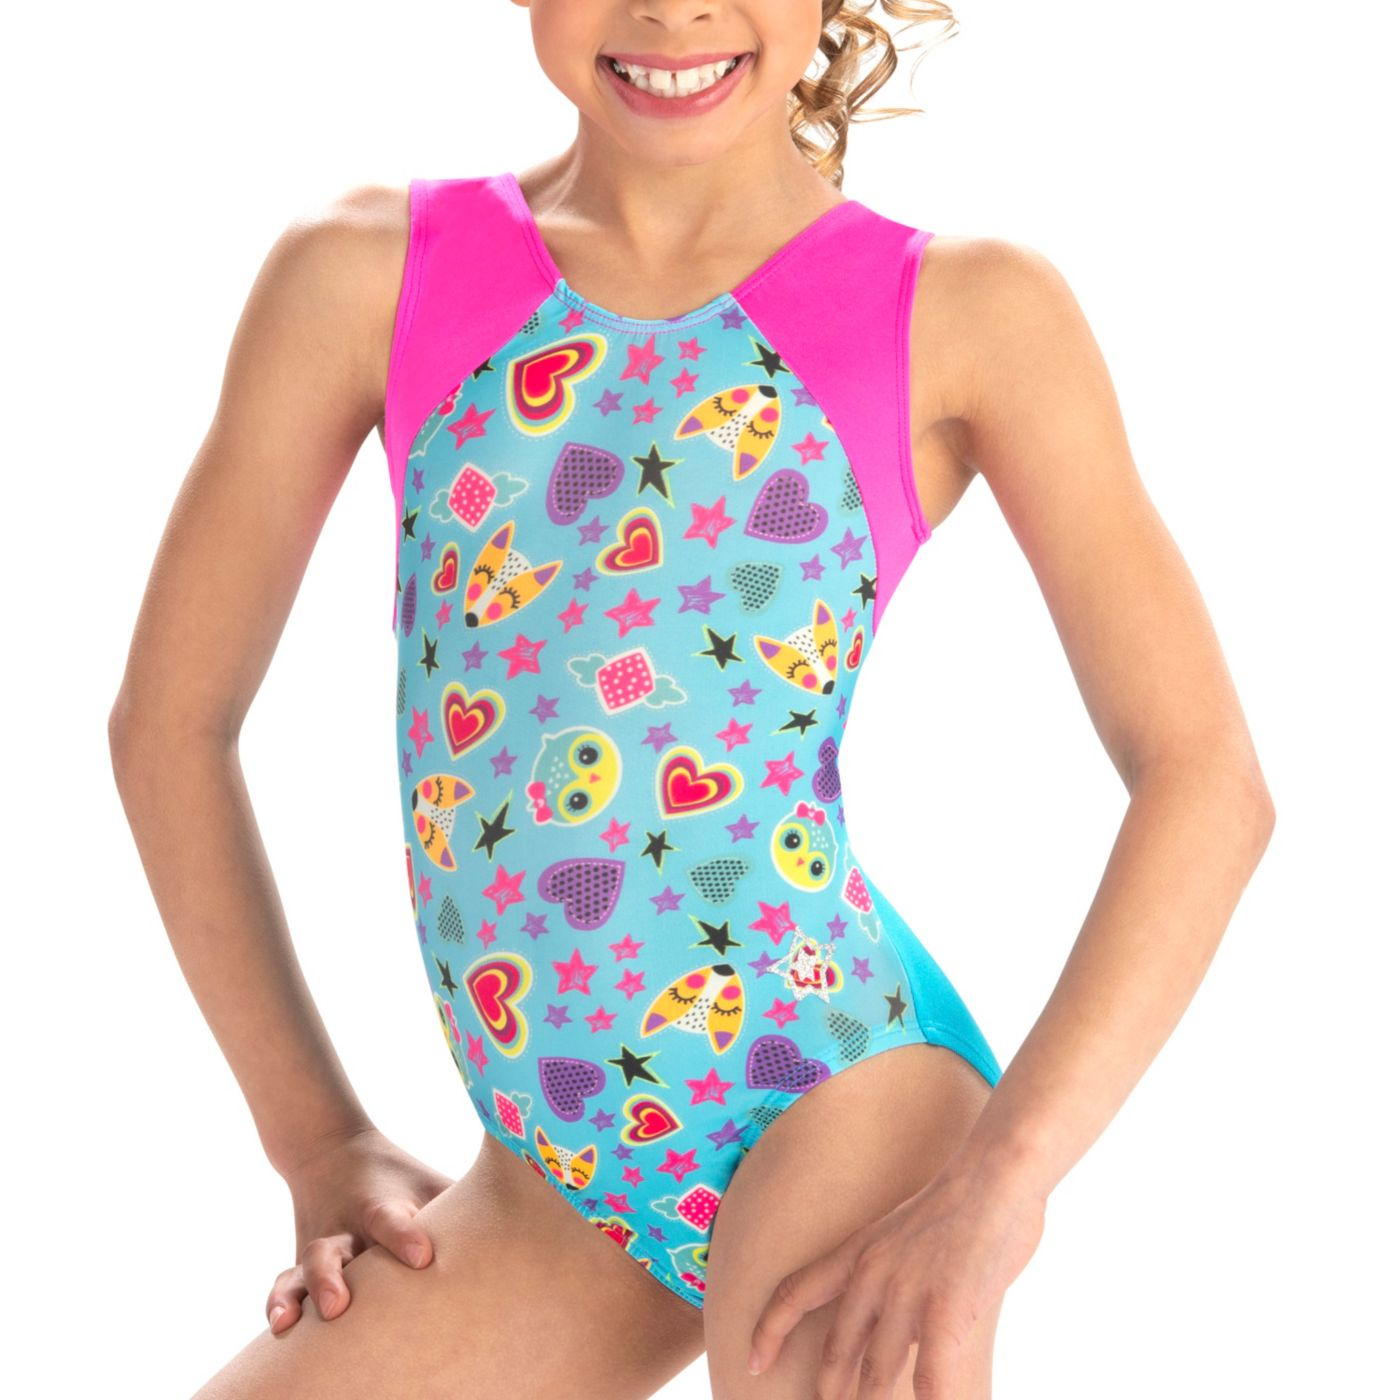 GK Elite Women's Foxy Fun Gymnastics Leotard